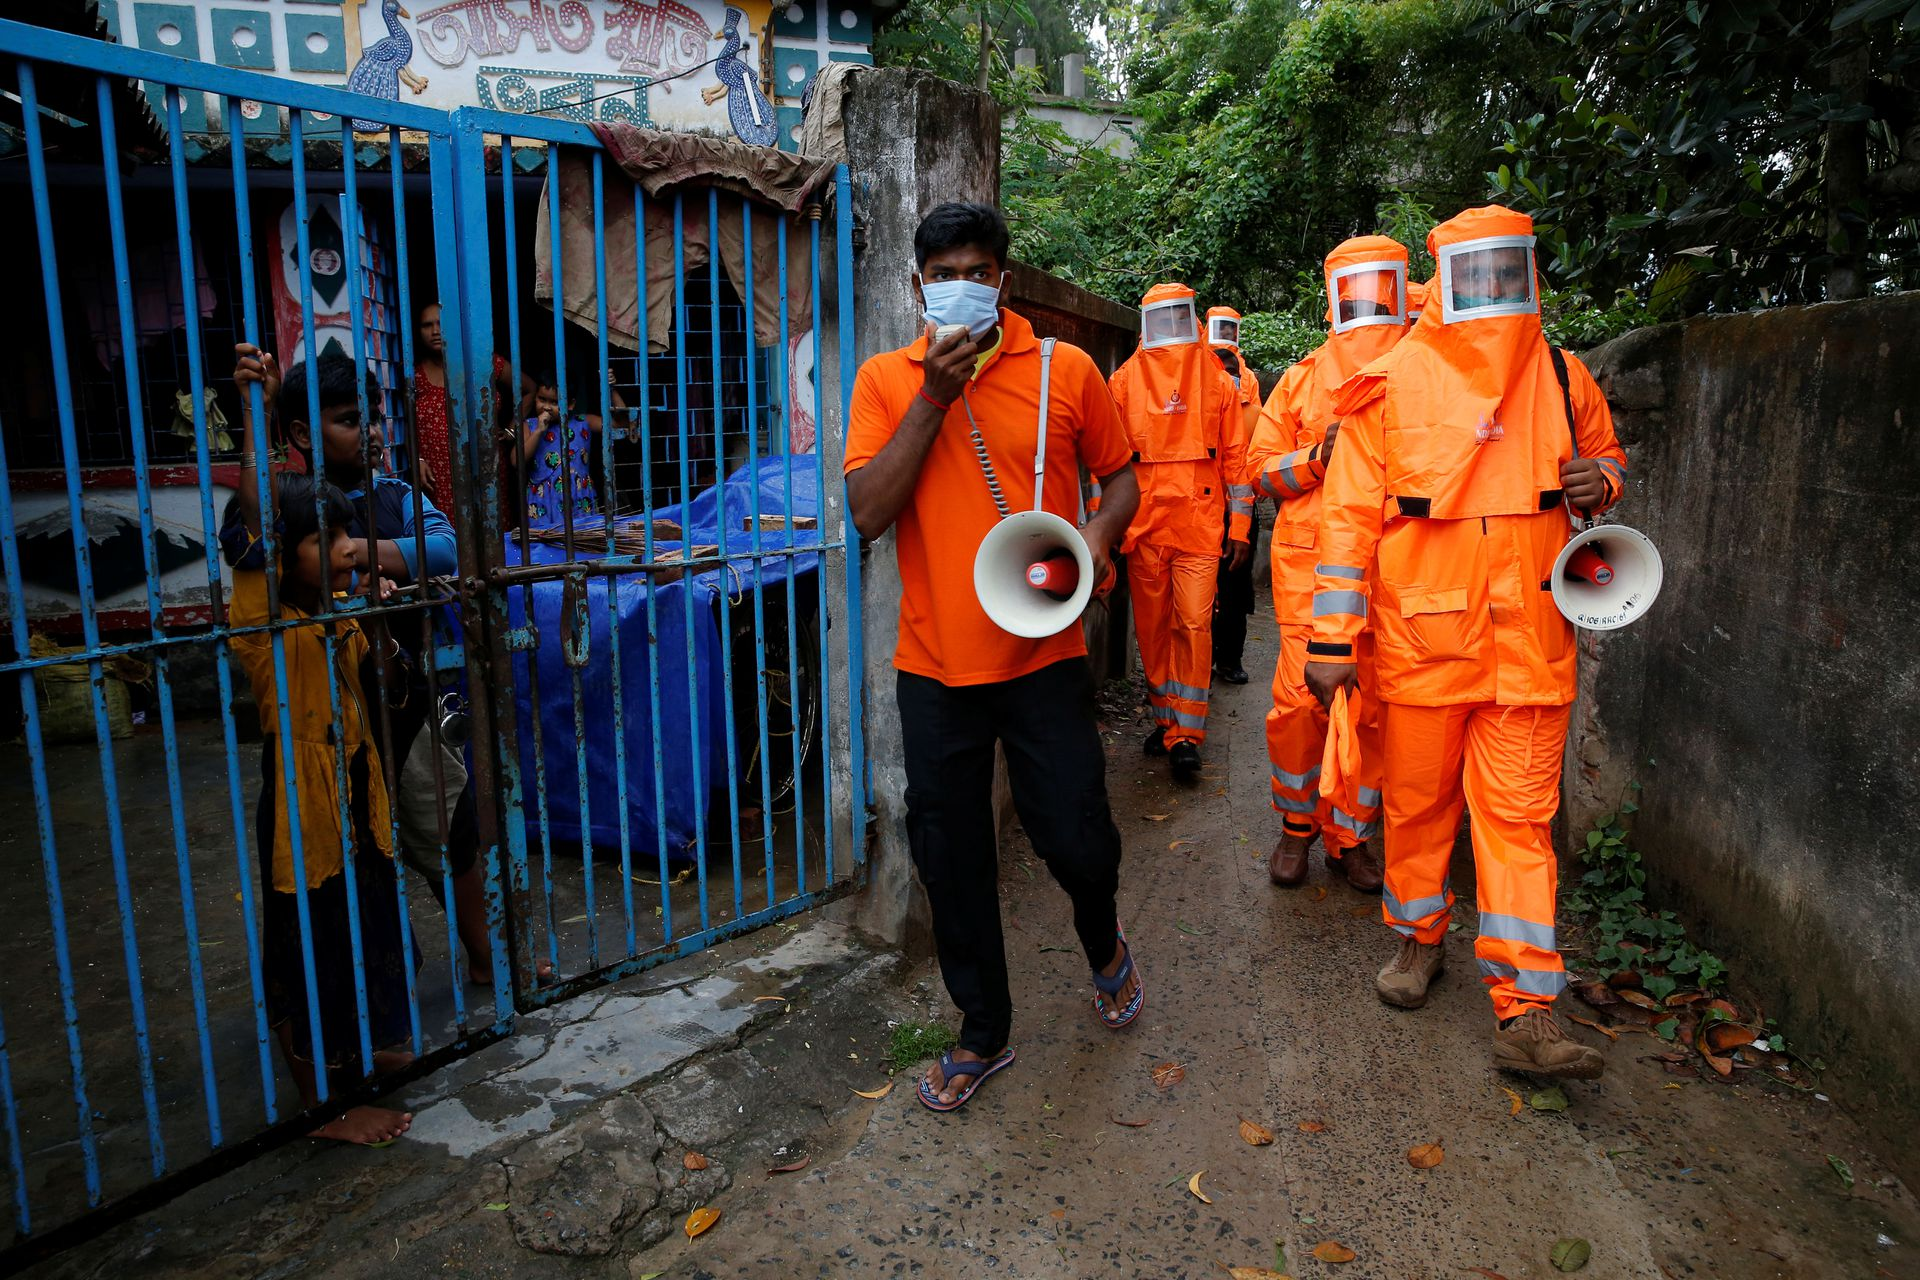 Members of the National Disaster Response Force (NDRF) use a megaphone to appeal to residents to move to safer place ahead of Cyclone Yaas at Digha in Purba Medinipur district in the eastern state of West Bengal, India, May 25, 2021. Photo: Reuters